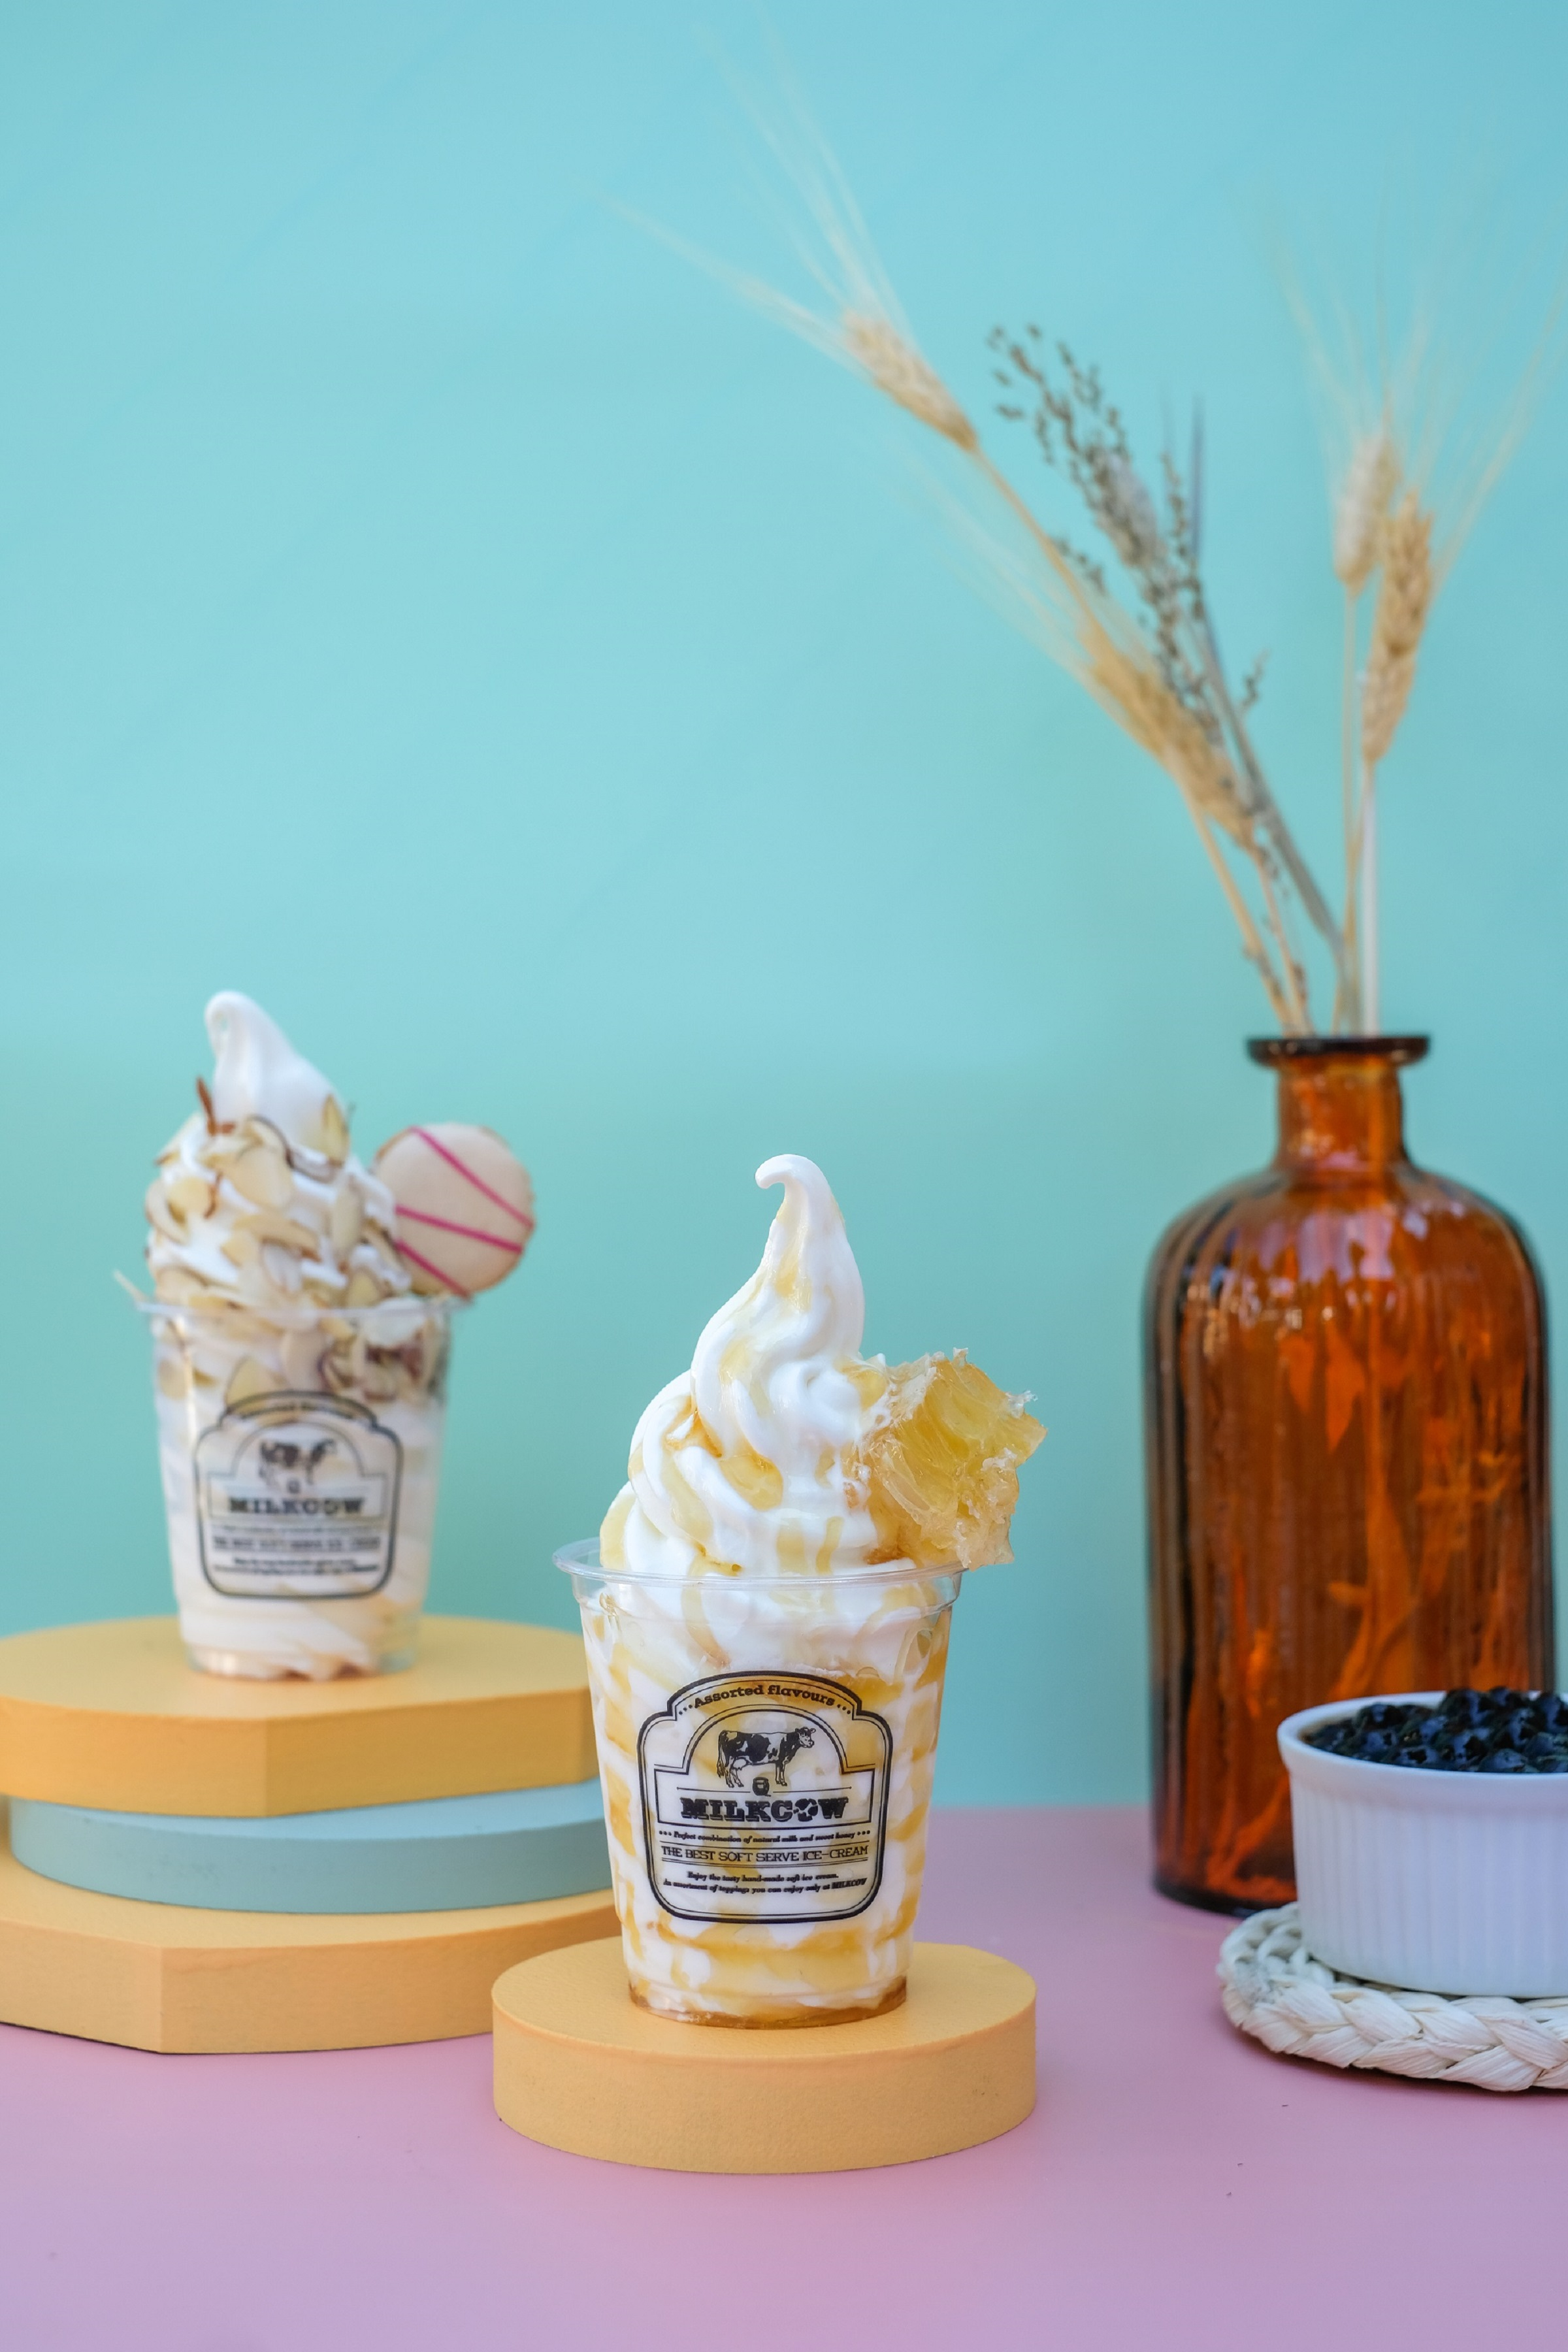 Two soft serve ice creams in a cup topped with a macaron on one and honeycomb on the other. A brown glass bottle sits on the right.